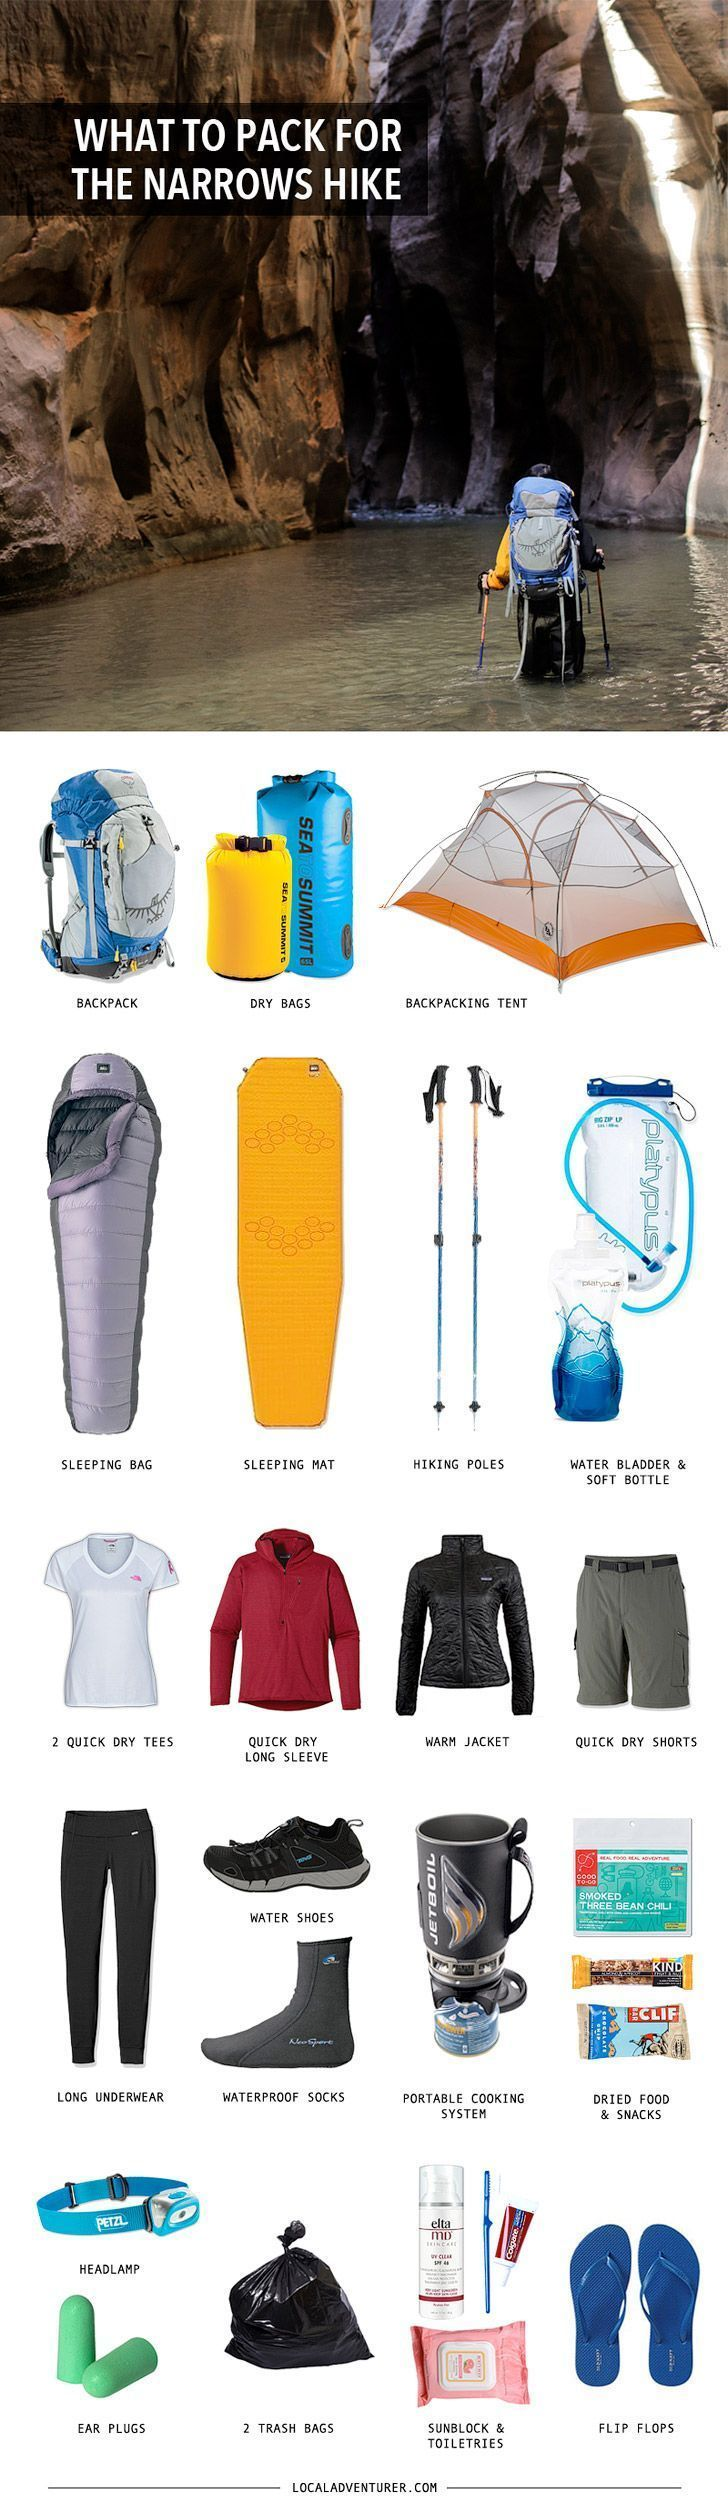 Backpacking gear list for the zion narrows hike tips backpacking gear listbest camping